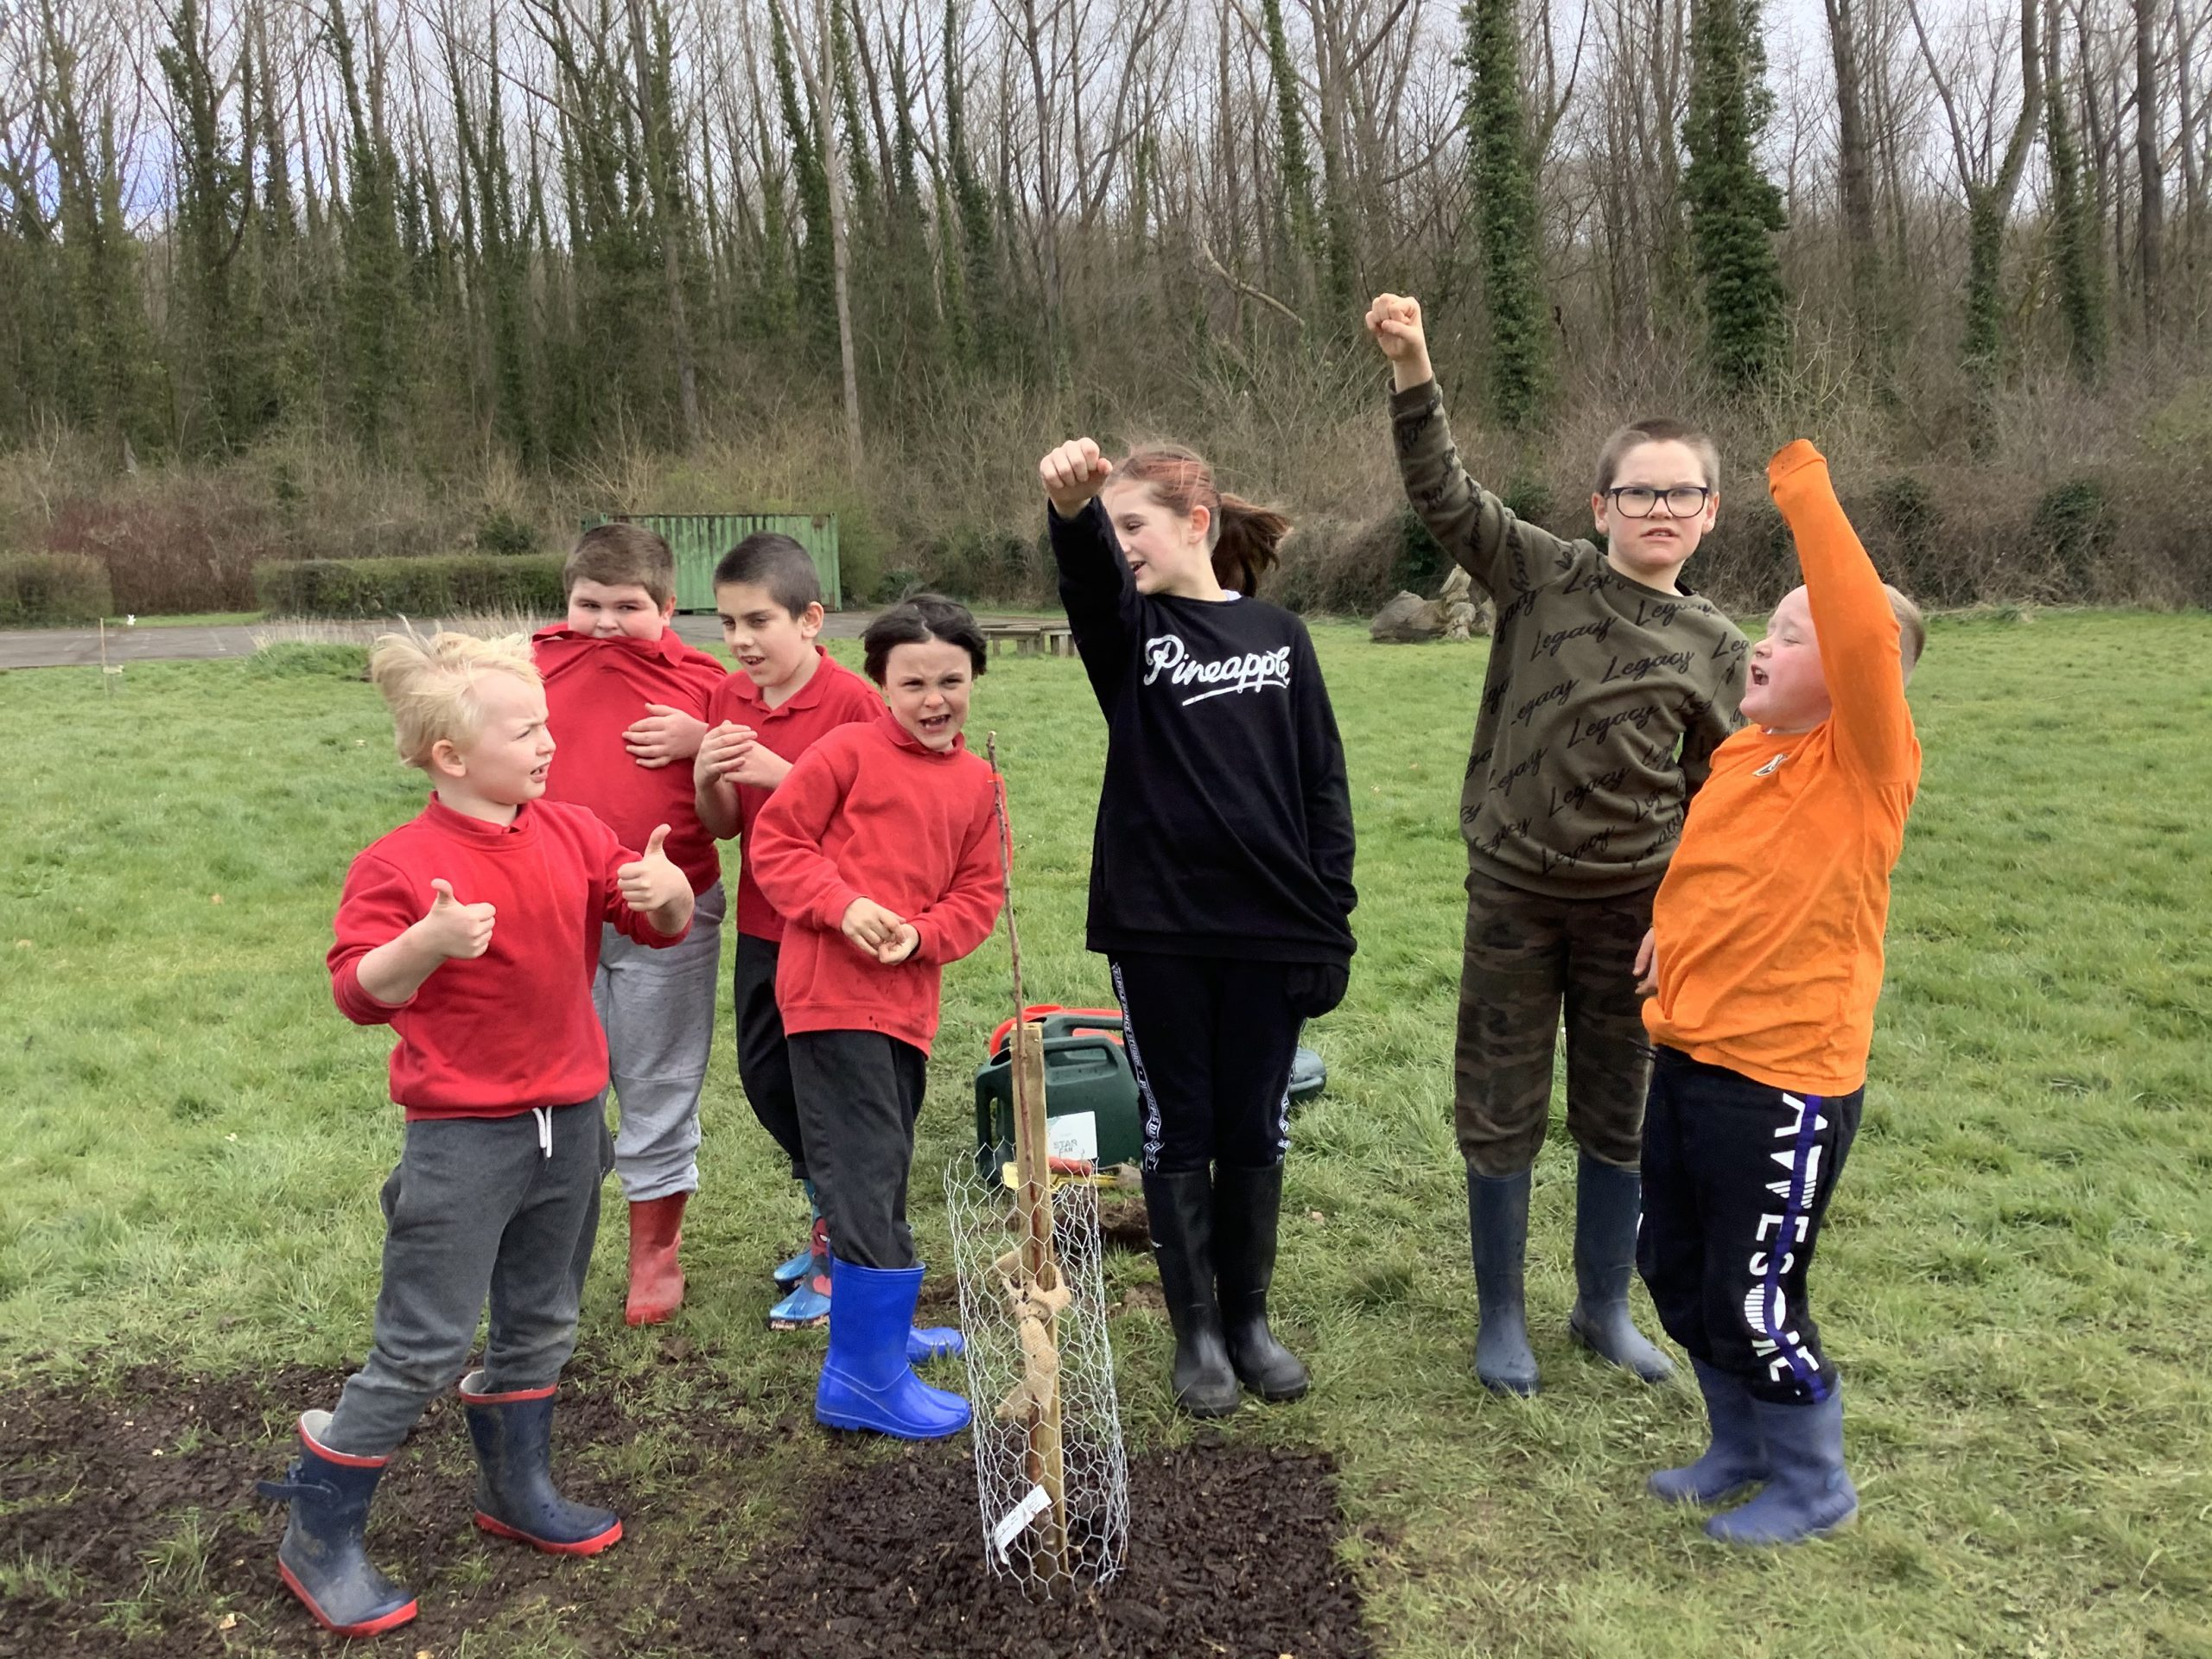 Everyone can participate in authentic, outdoor learning! Together we are stronger!